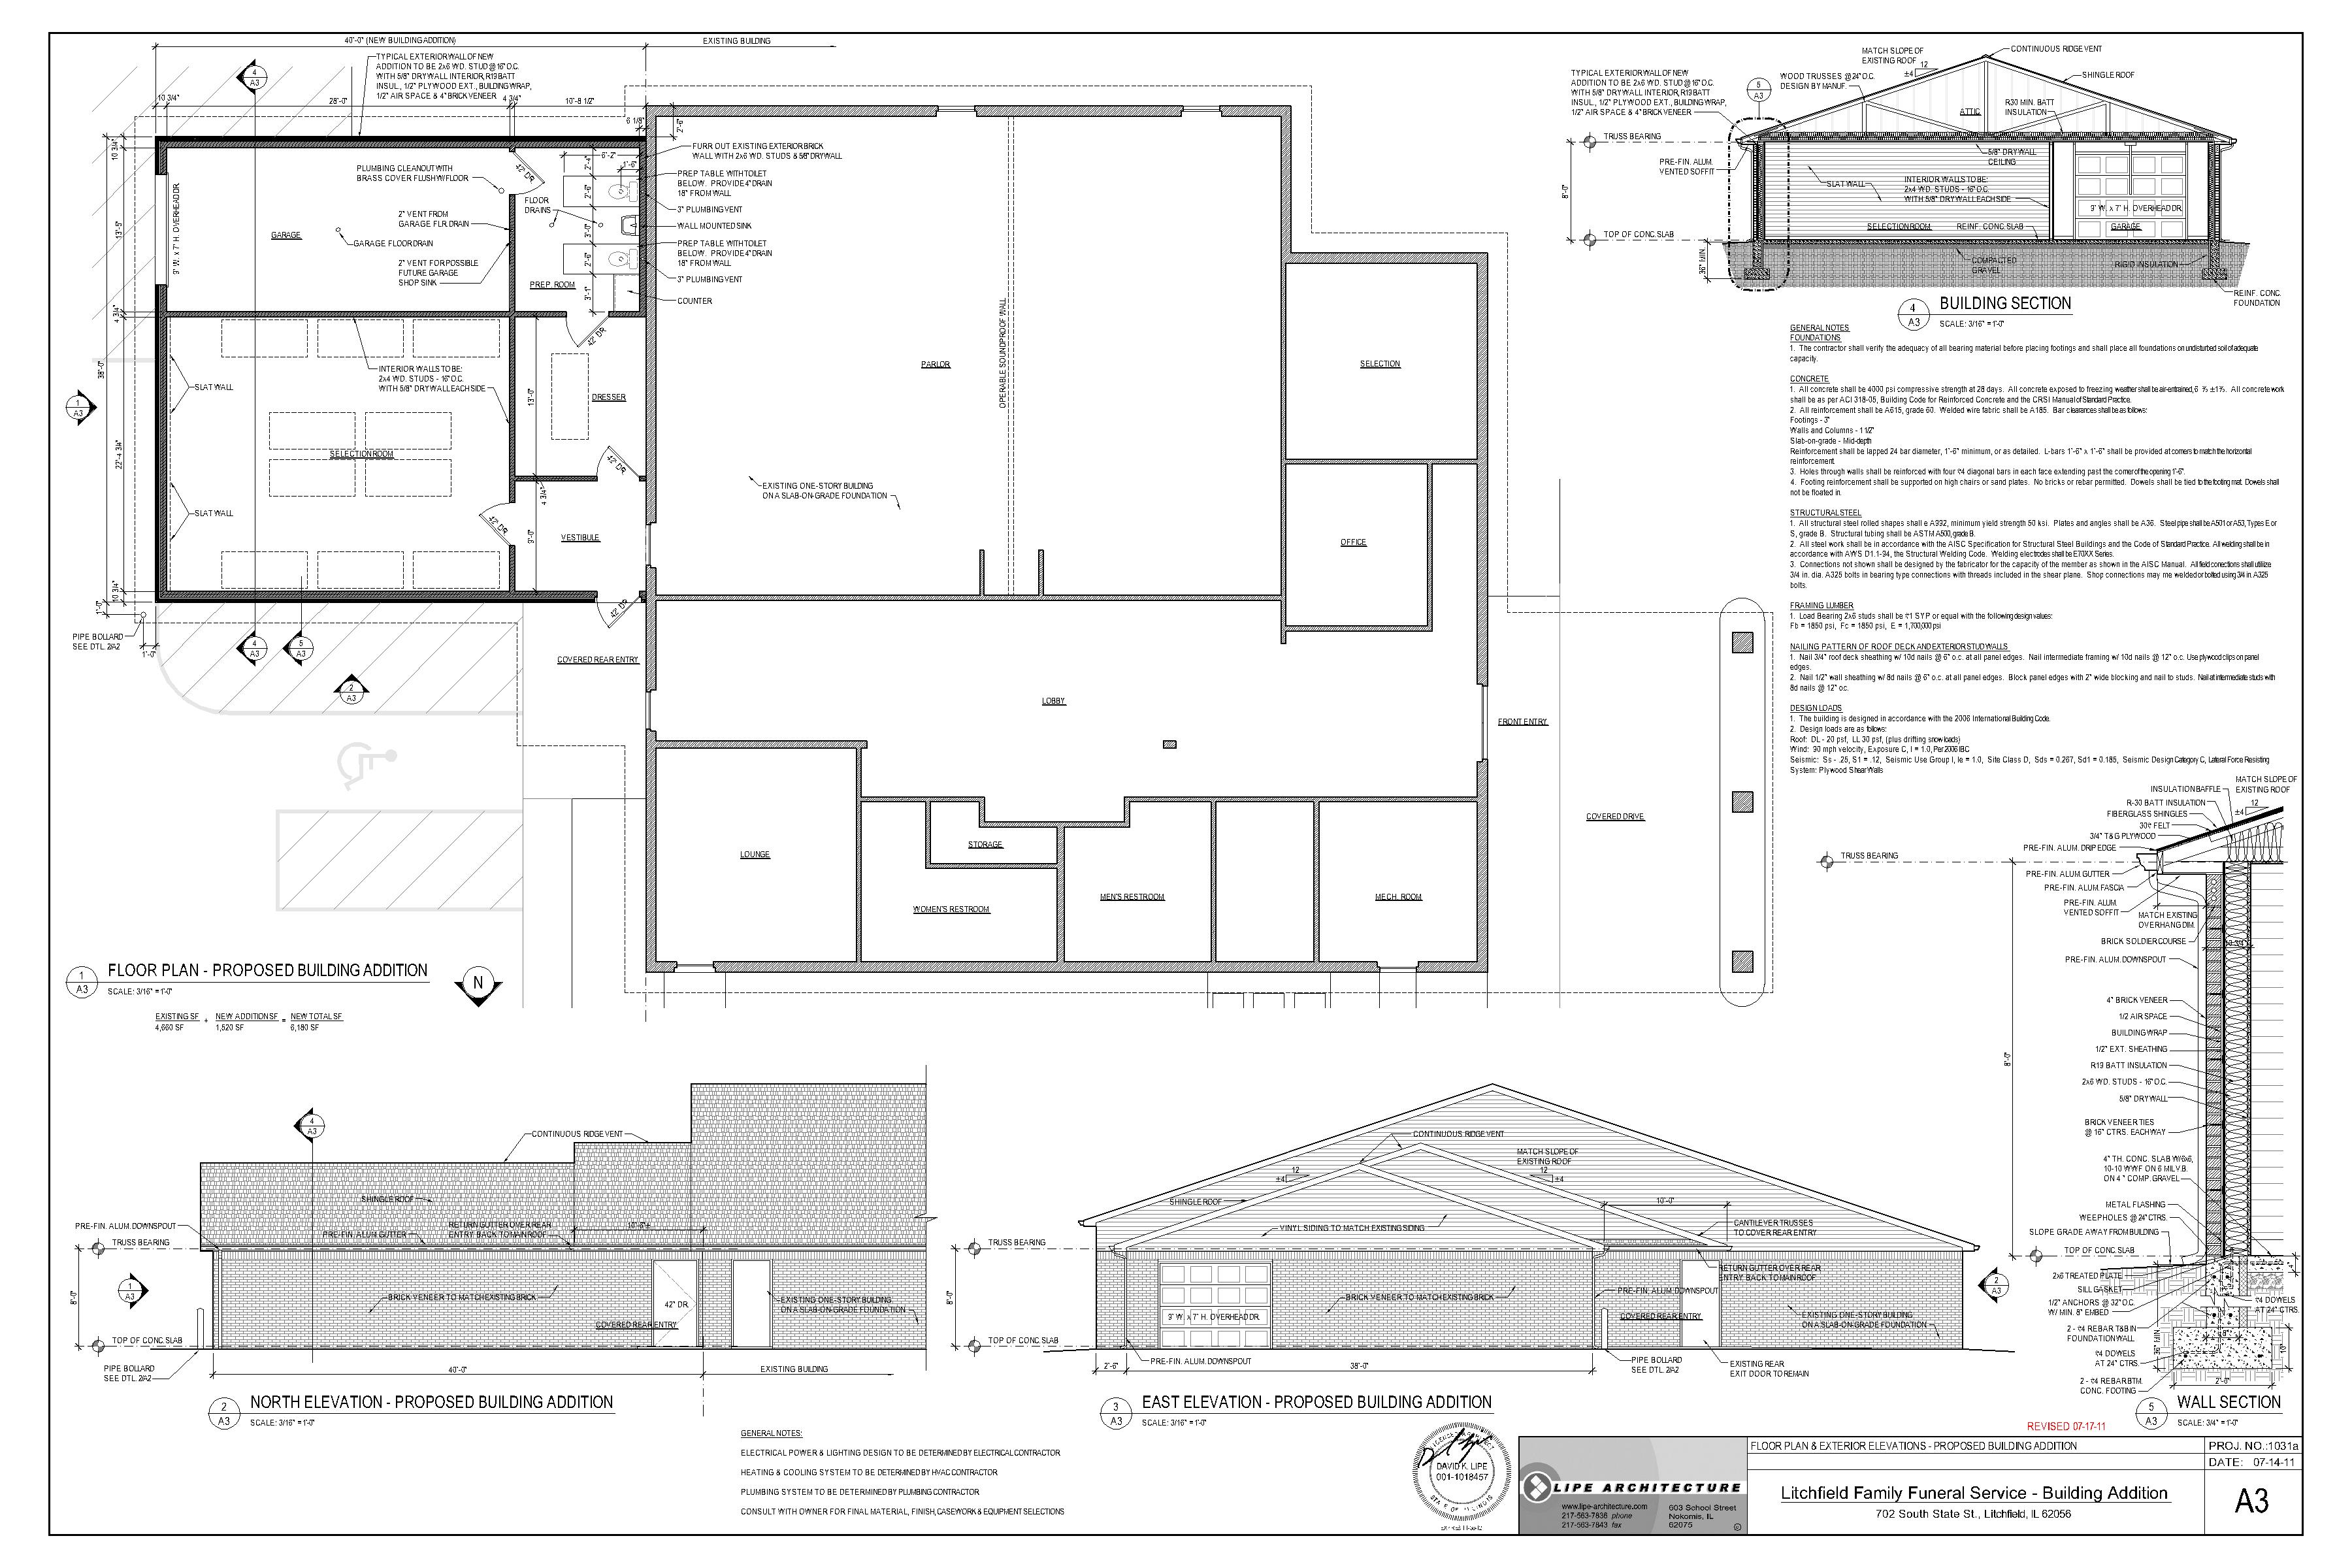 Index Of Images Litchfield Funeral January 2013 Schematic Diagram 02 Jan 1225 12m